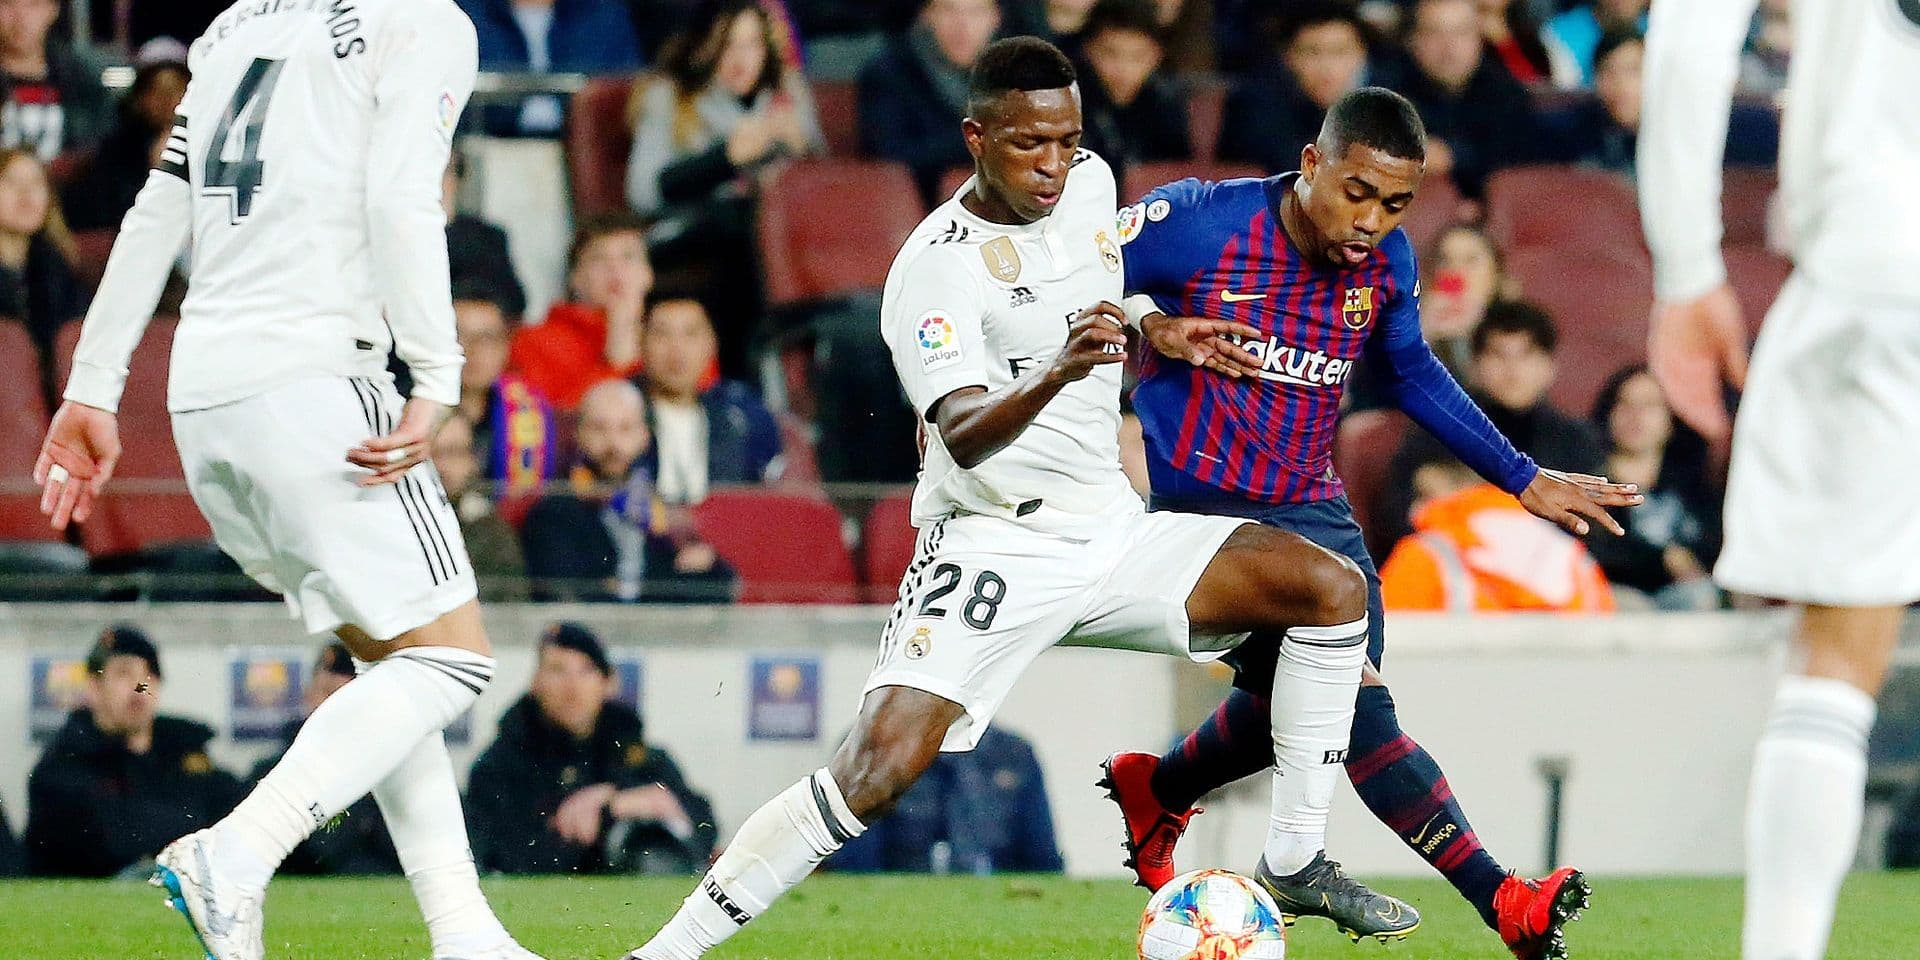 Real Madrid's Brazilian forward Vinicius Junior (L) vies with Barcelona's Portuguese defender Nelson Semedo during the Spanish Copa del Rey (King's Cup) semi-final first leg football match between FC Barcelona and Real Madrid CF at the Camp Nou stadium in Barcelona on February 6, 2019. (Photo by Pau Barrena / AFP)